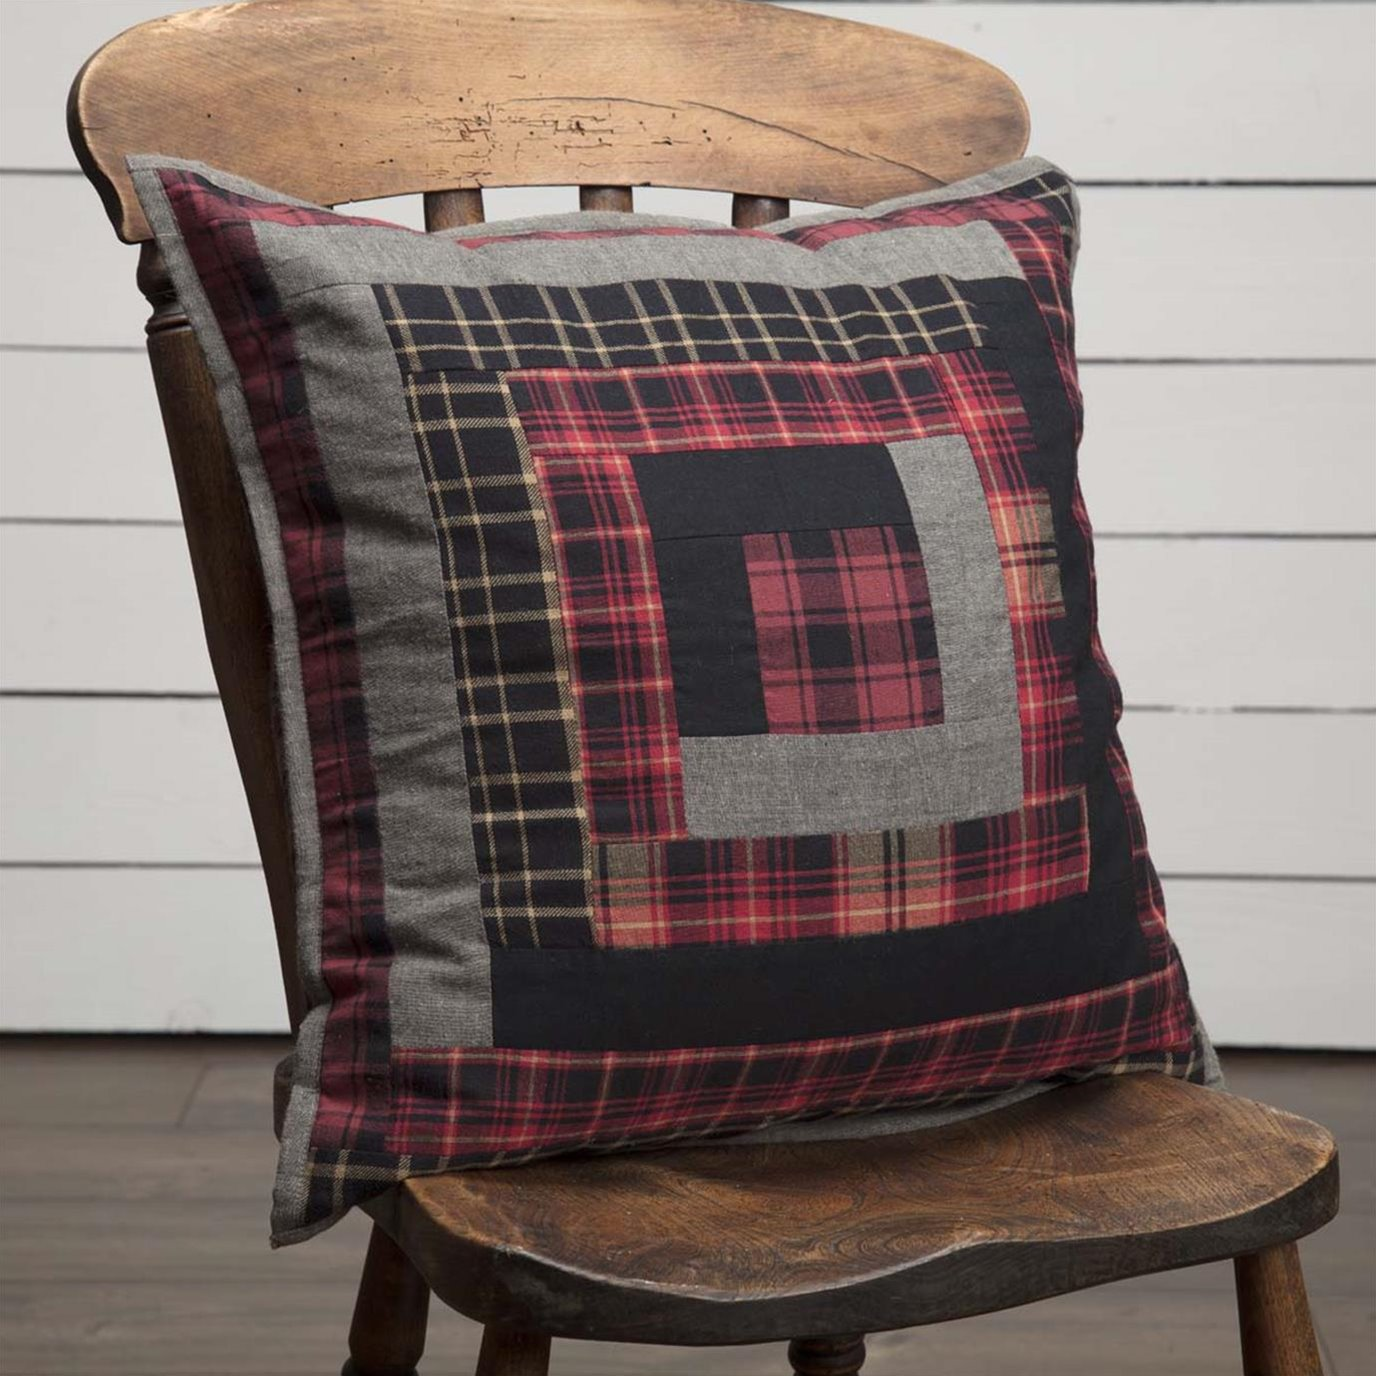 Cumberland Patchwork Pillow 18x18